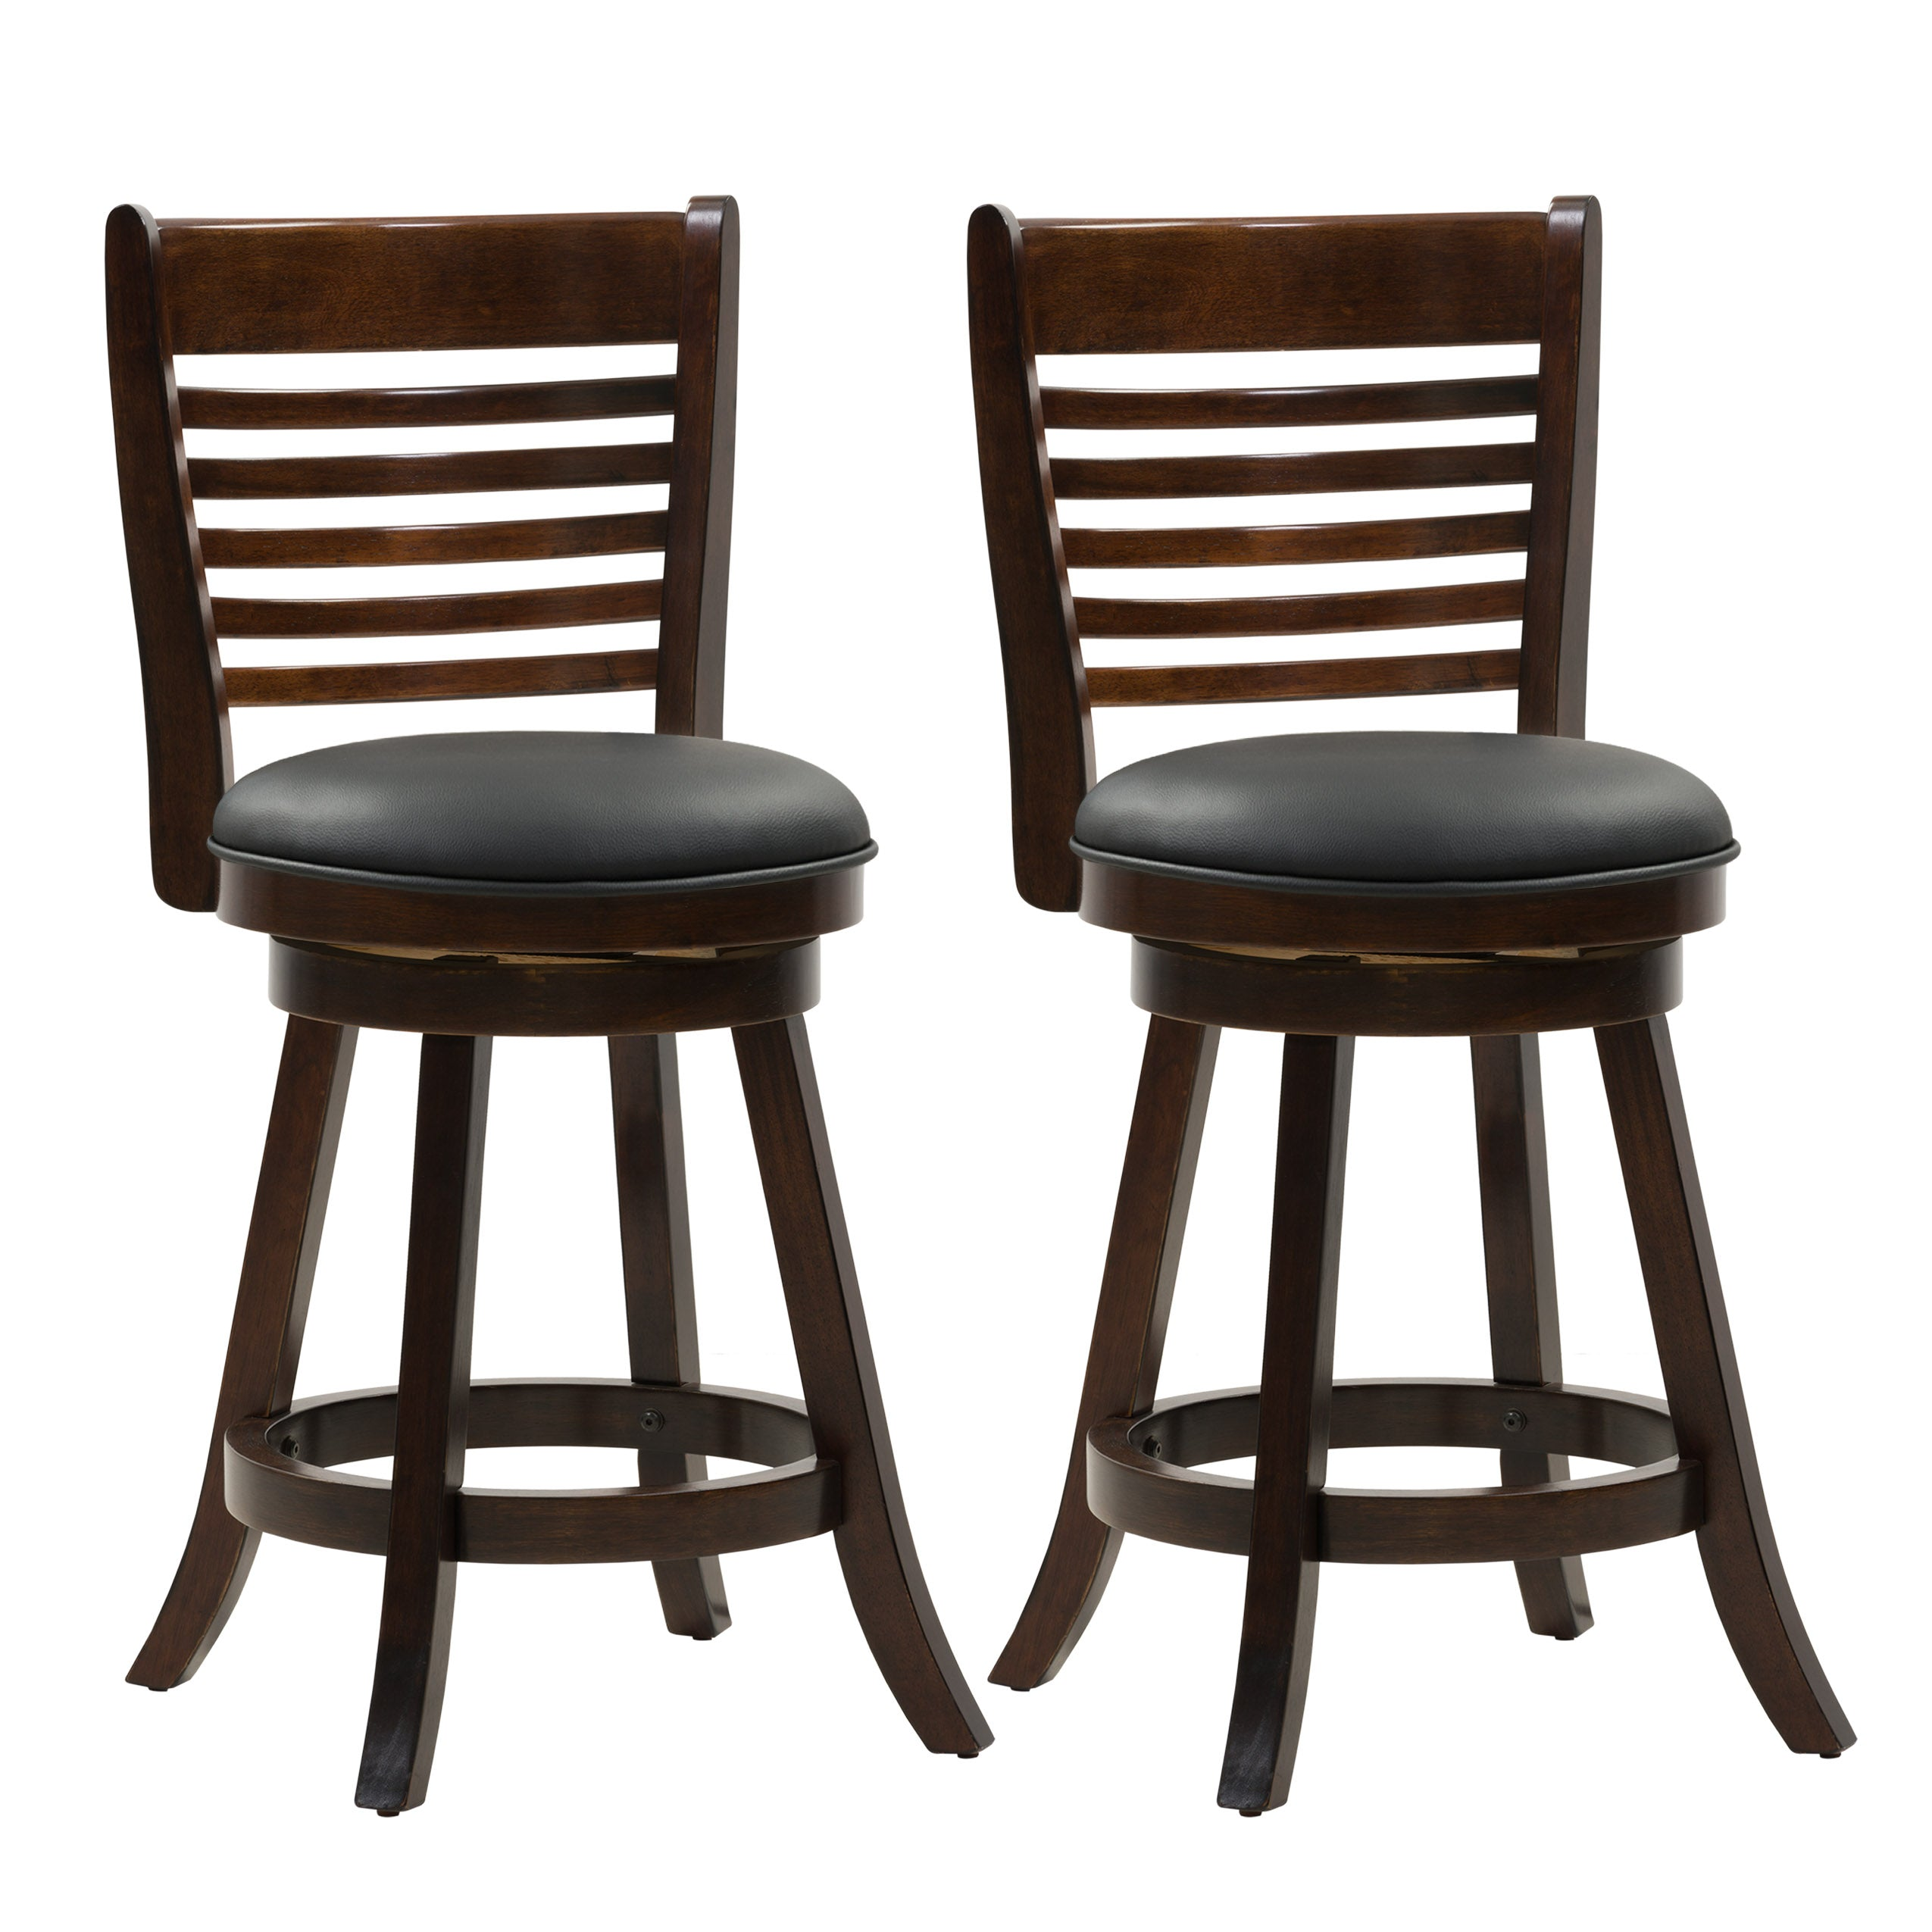 Prime Wood Counter Height Bar Stool Bonded Leather Seat 6 Slat Backrest Set Of 2 Uwap Interior Chair Design Uwaporg